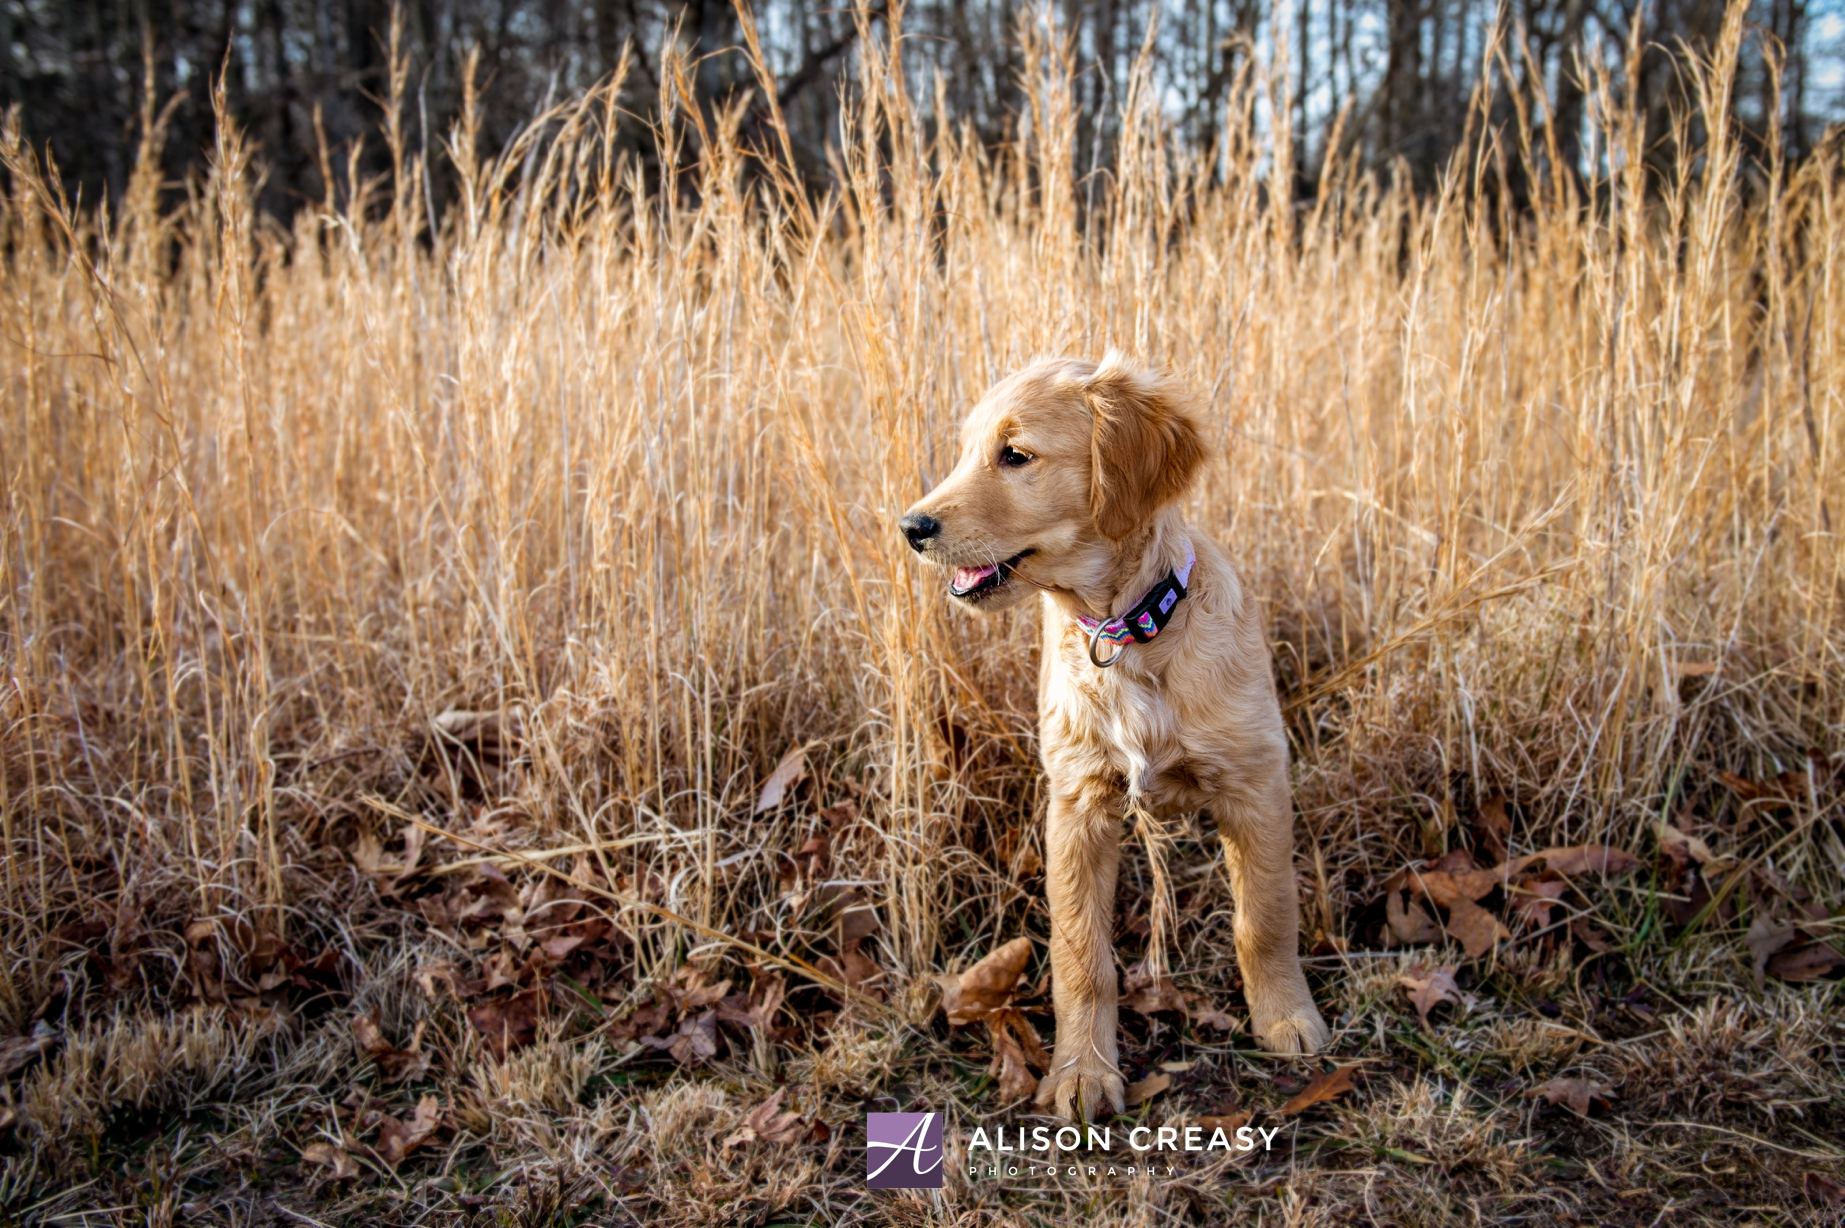 Alison-Creasy-Photography-Lynchburg-VA-Pet-Photographer_0009.jpg